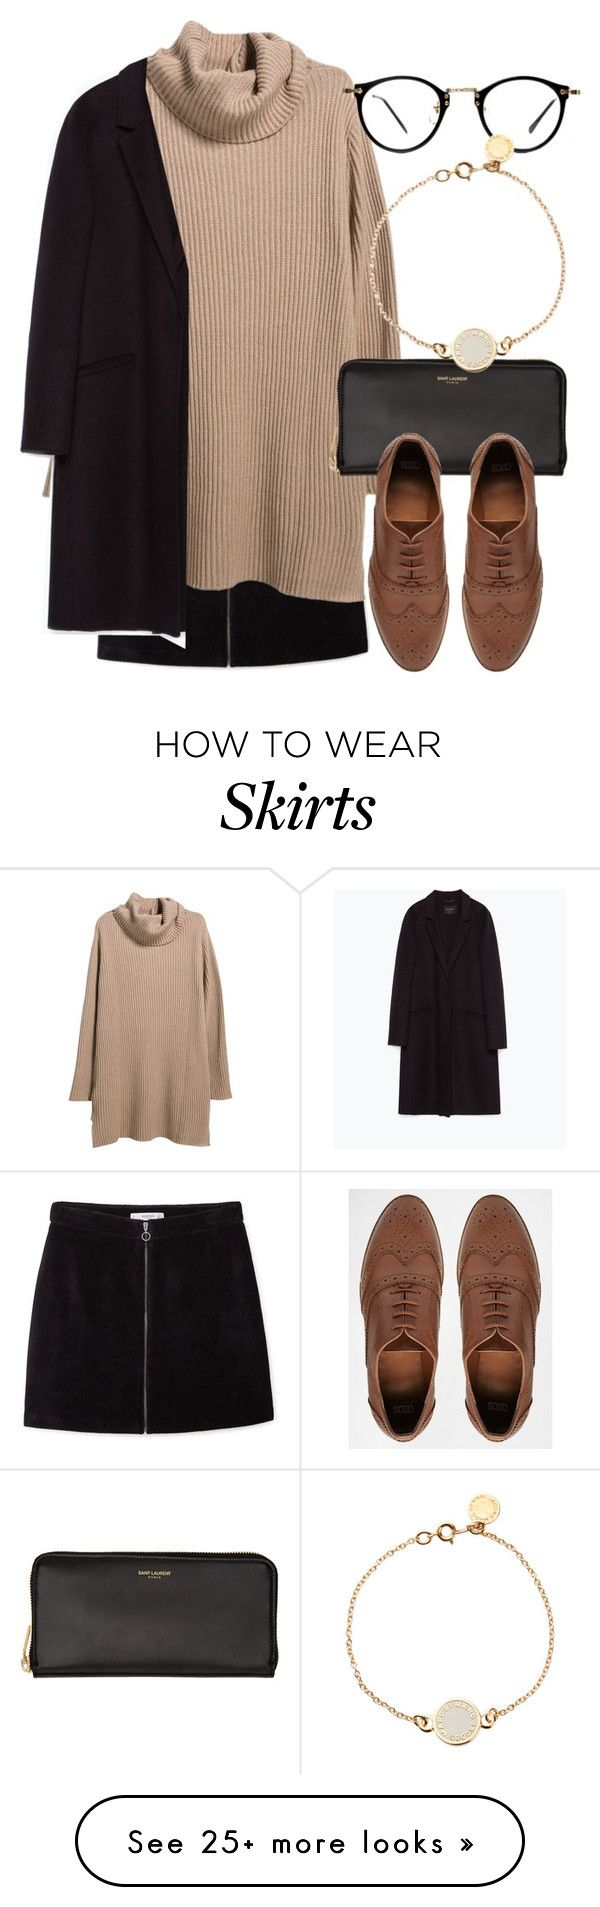 """Untitled #5148"" by laurenmboot on Polyvore featuring MANGO, Violeta by Mango, Yves Saint Laurent, ASOS, Zara, Marc by Marc Jacobs, women's clothing, women, female and woman"